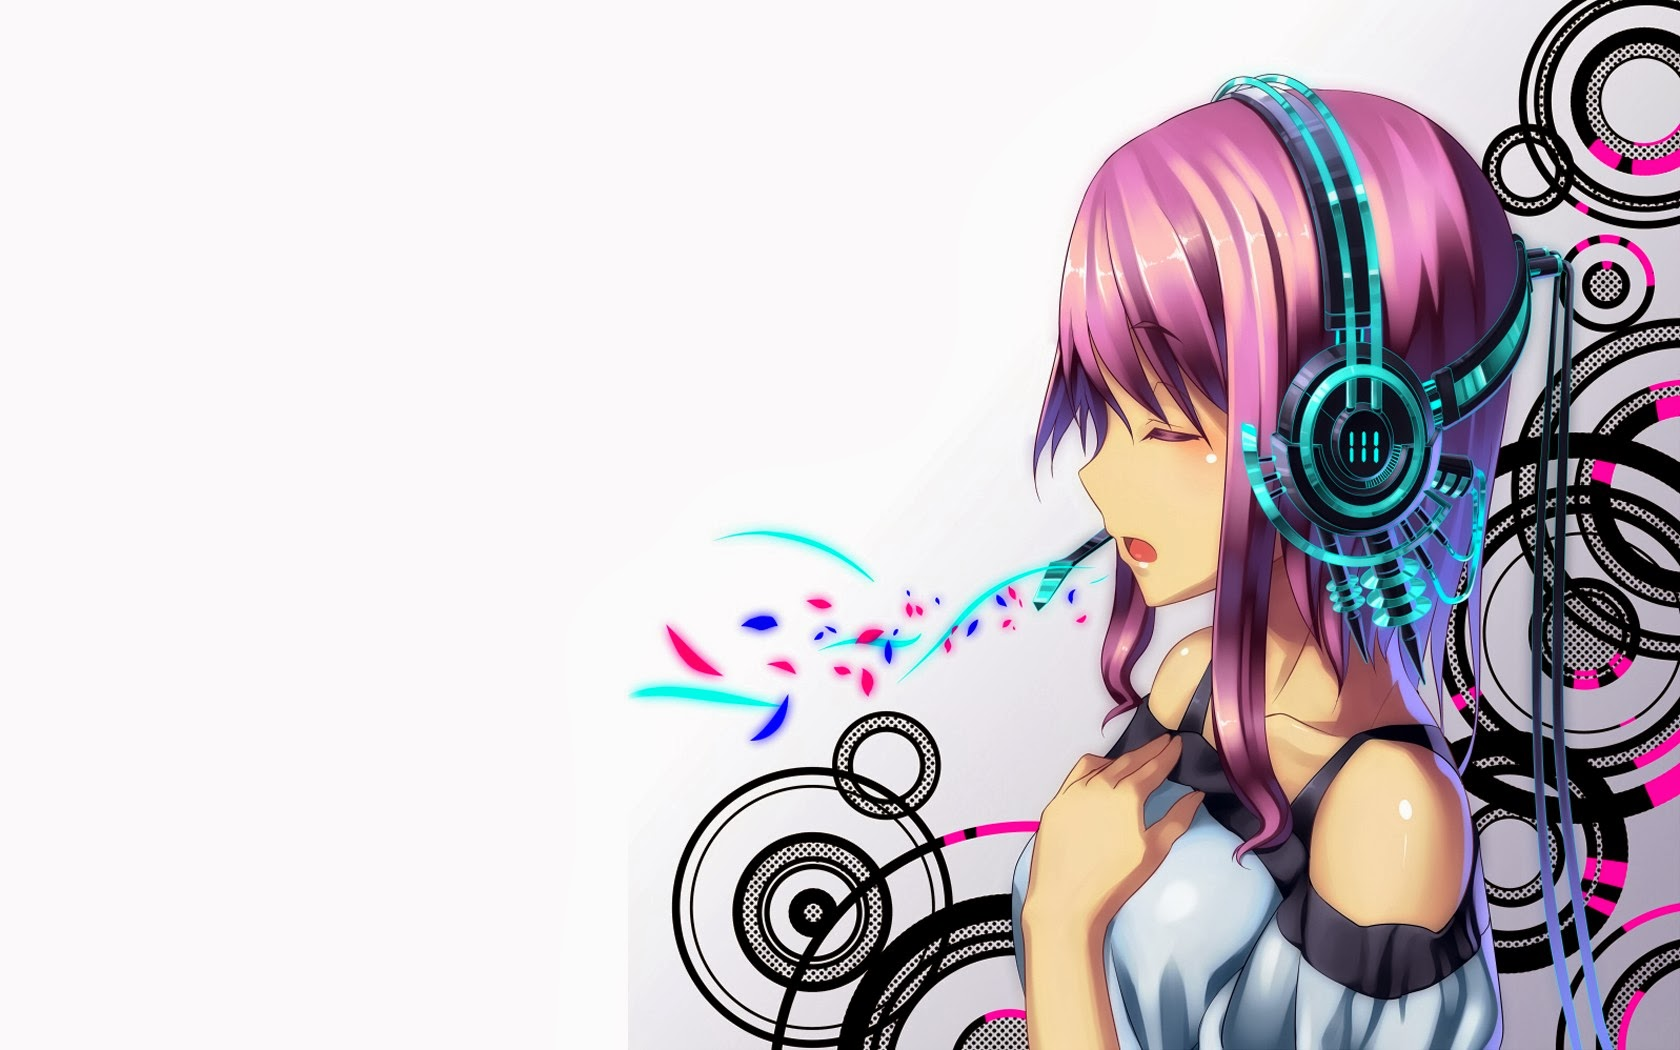 anime girl abstract headphone hd wallpaper 16801050 widescreen a913 1680x1050